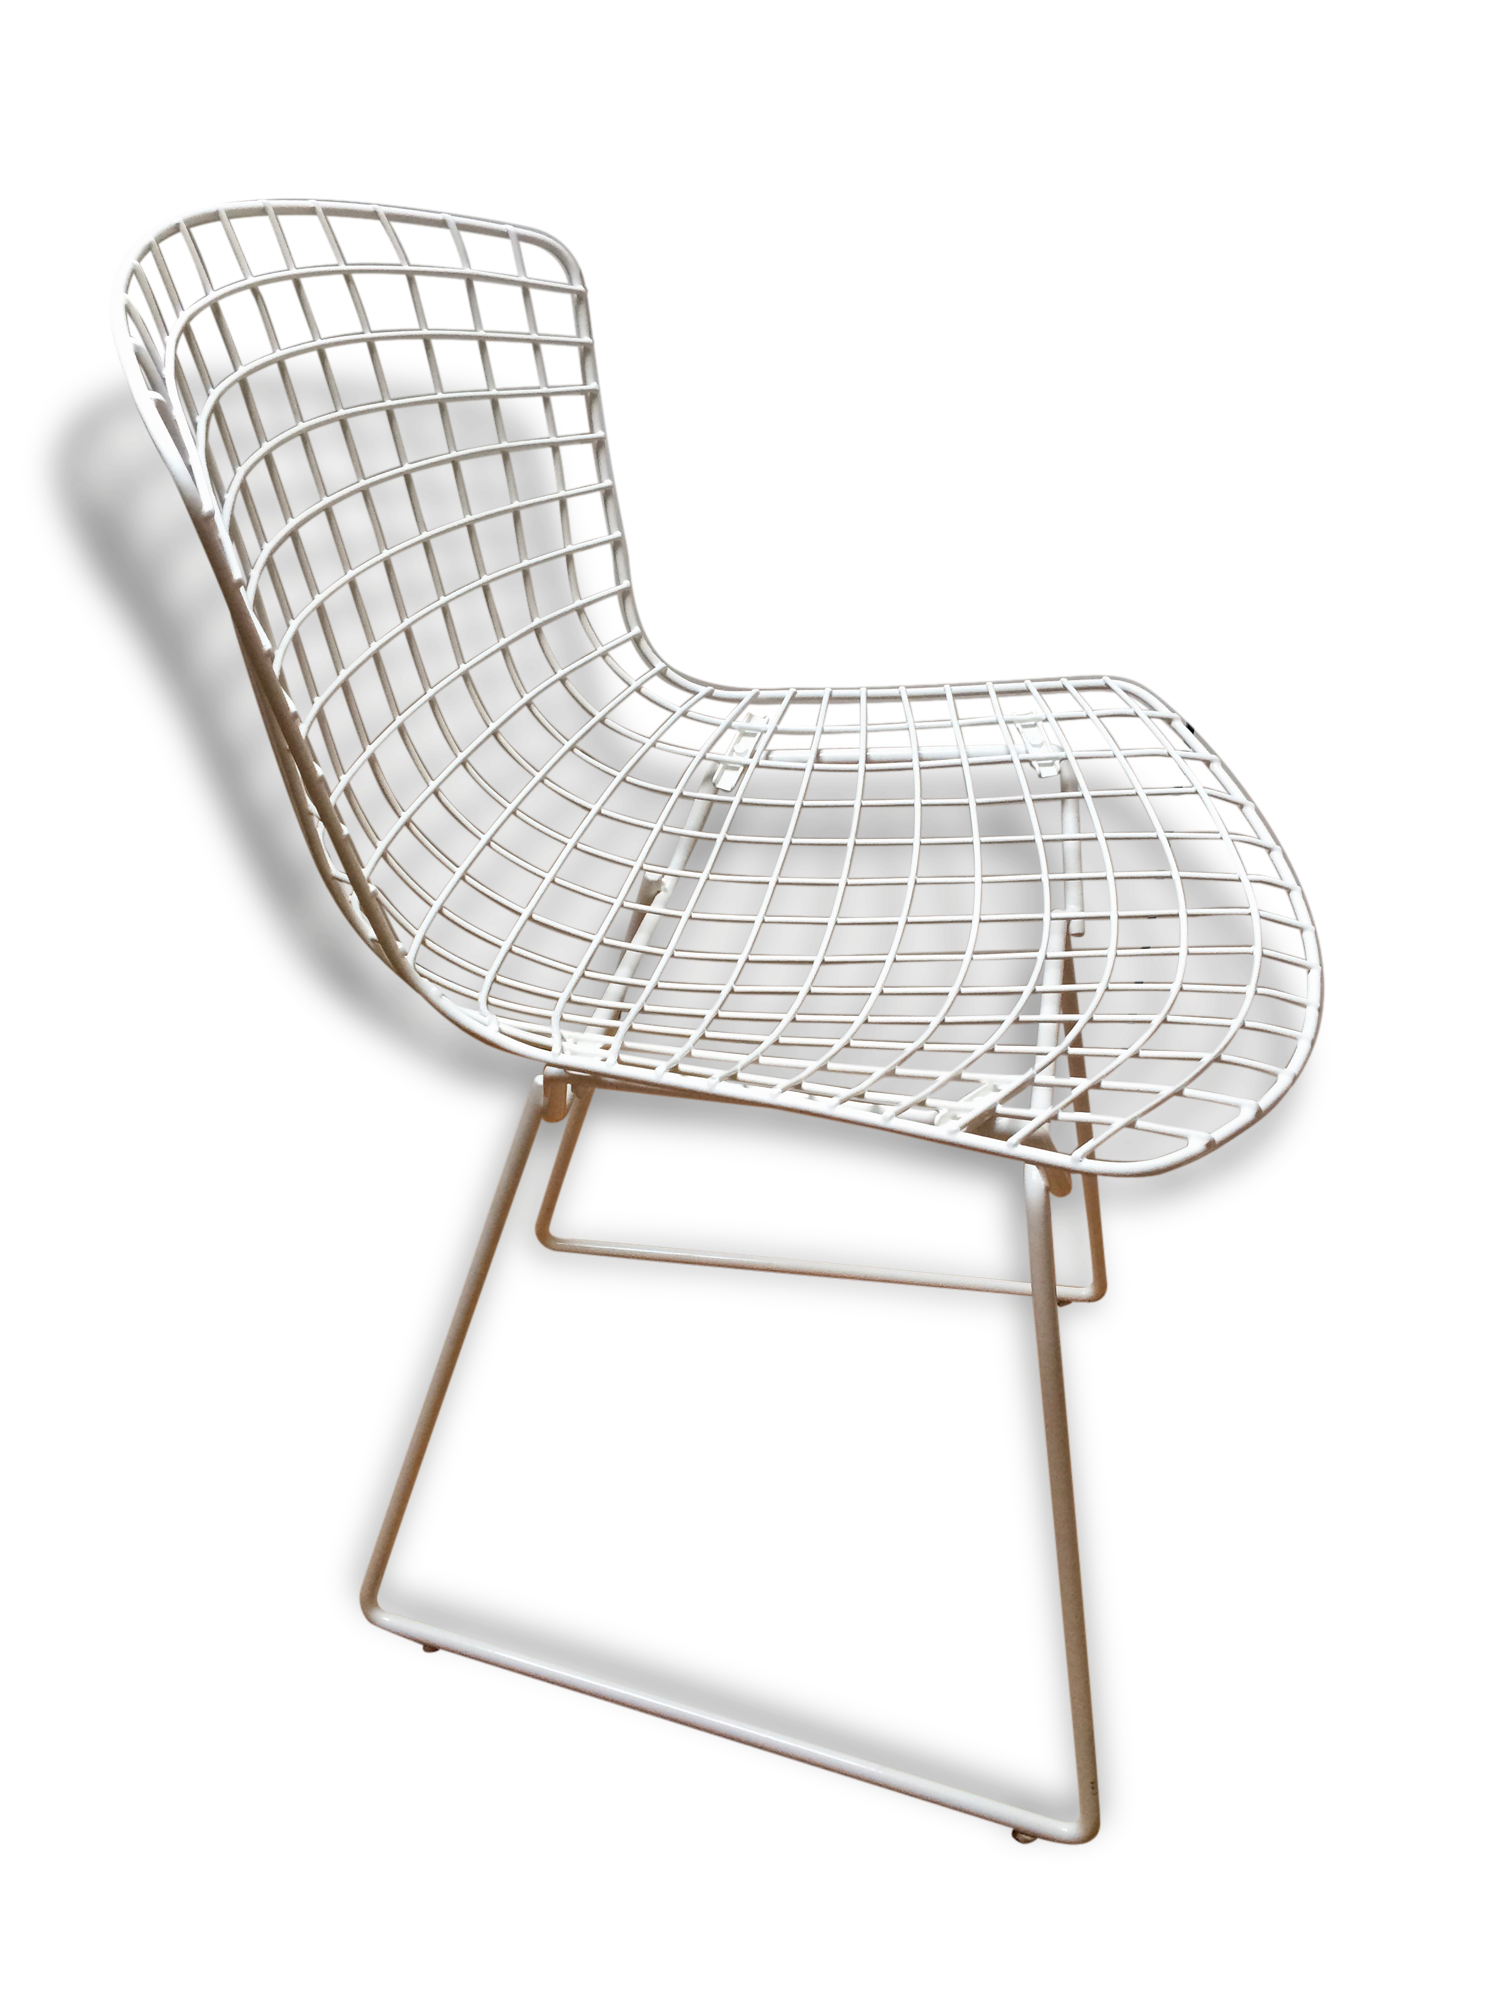 coussin chaise bertoia cool chaise bertoia chrome avec galette duassise en tissu knoll with. Black Bedroom Furniture Sets. Home Design Ideas